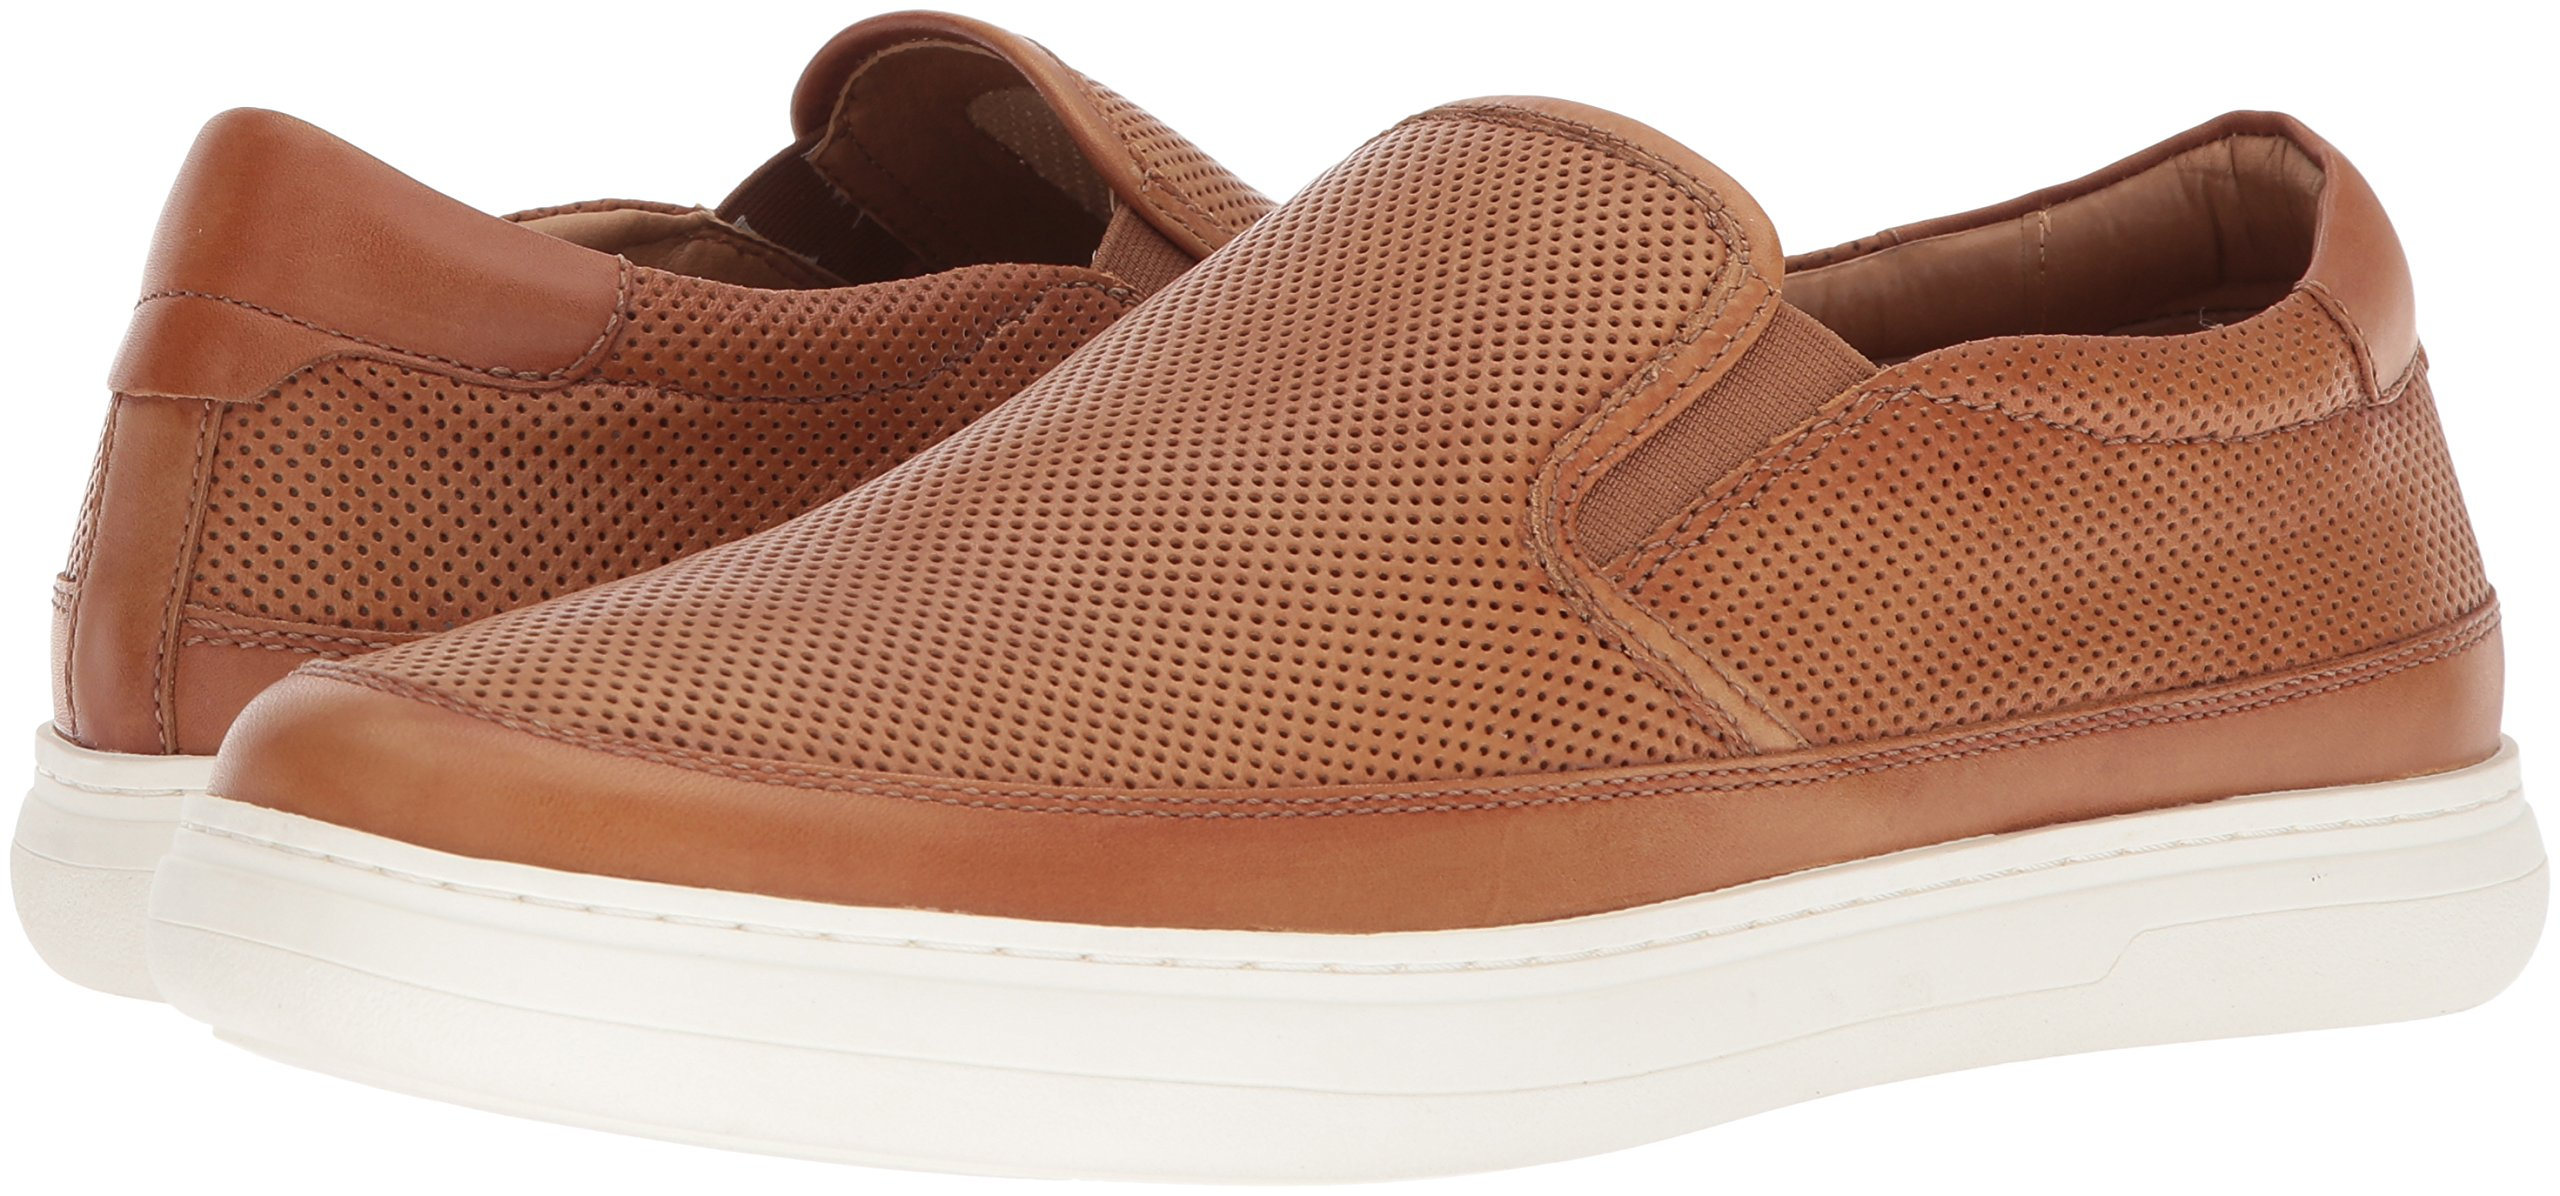 Donald J Pliner Men's Corbyn Sneaker, Saddle, 10.5 Medium US by Donald J Pliner (Image #5)